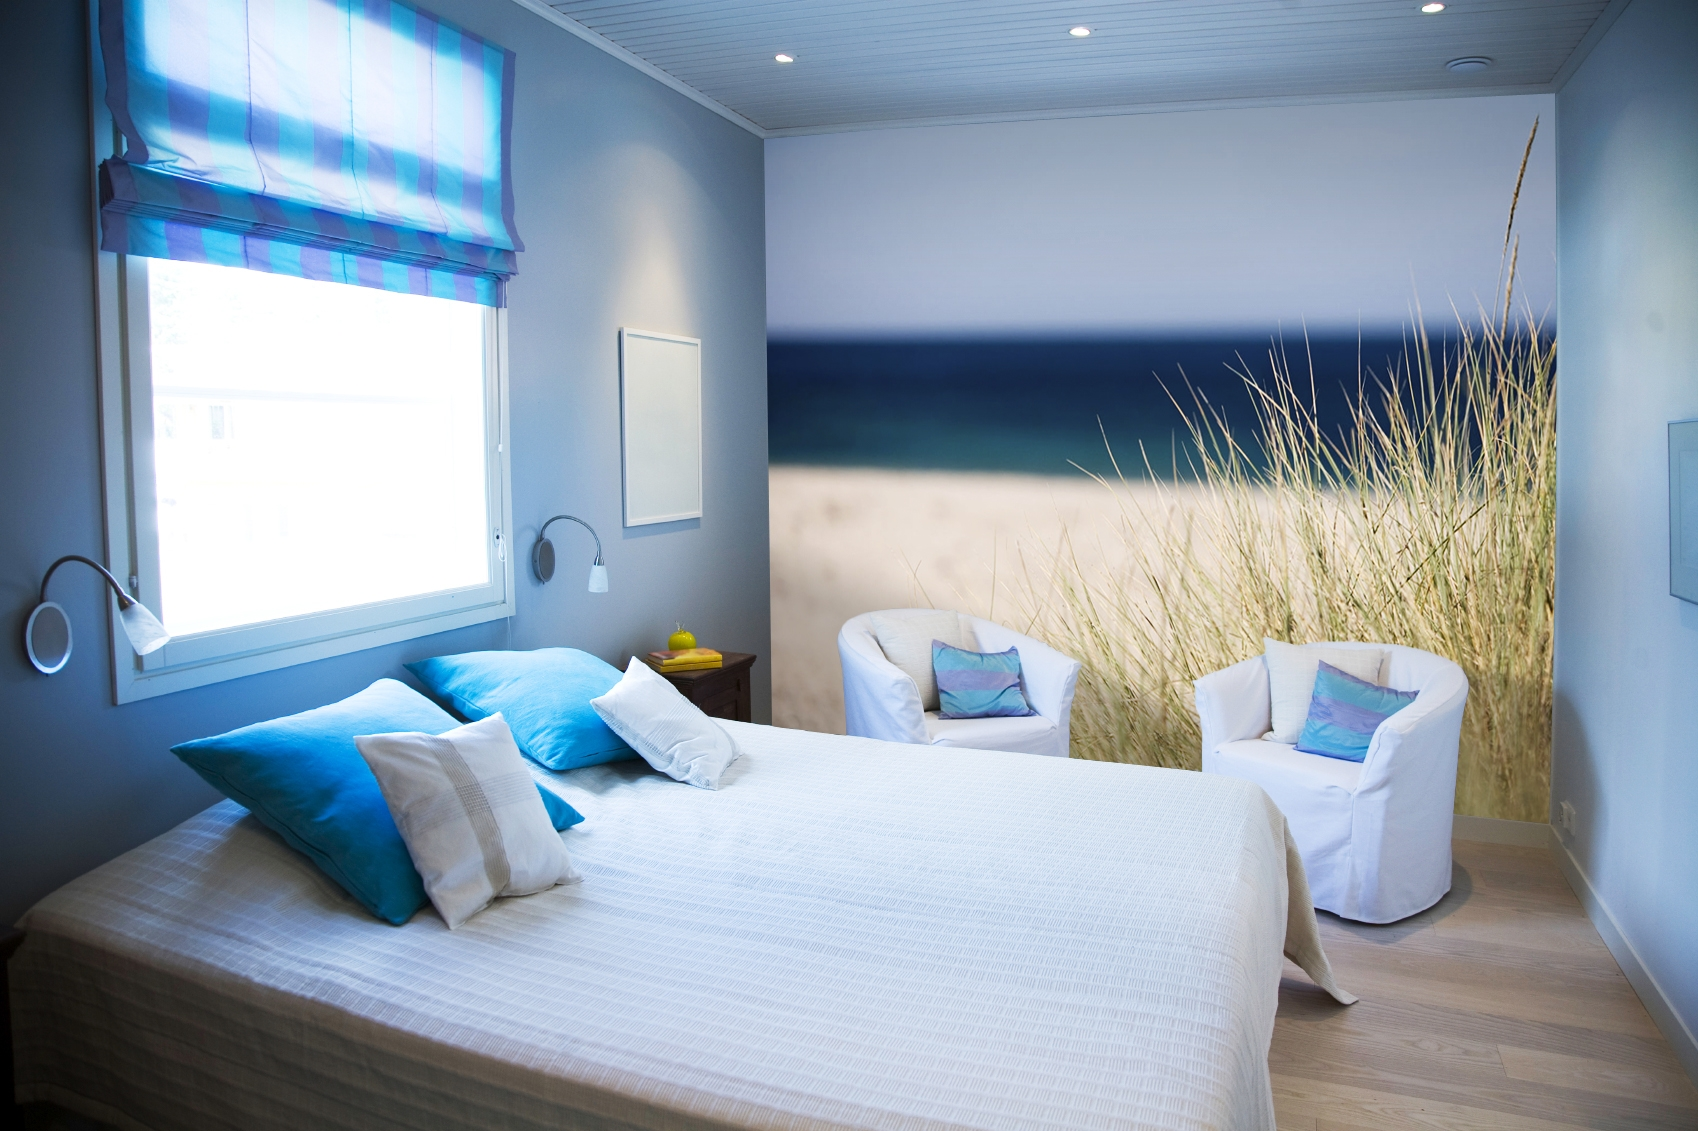 lifepr beach themed bedroom for better sleeping quality